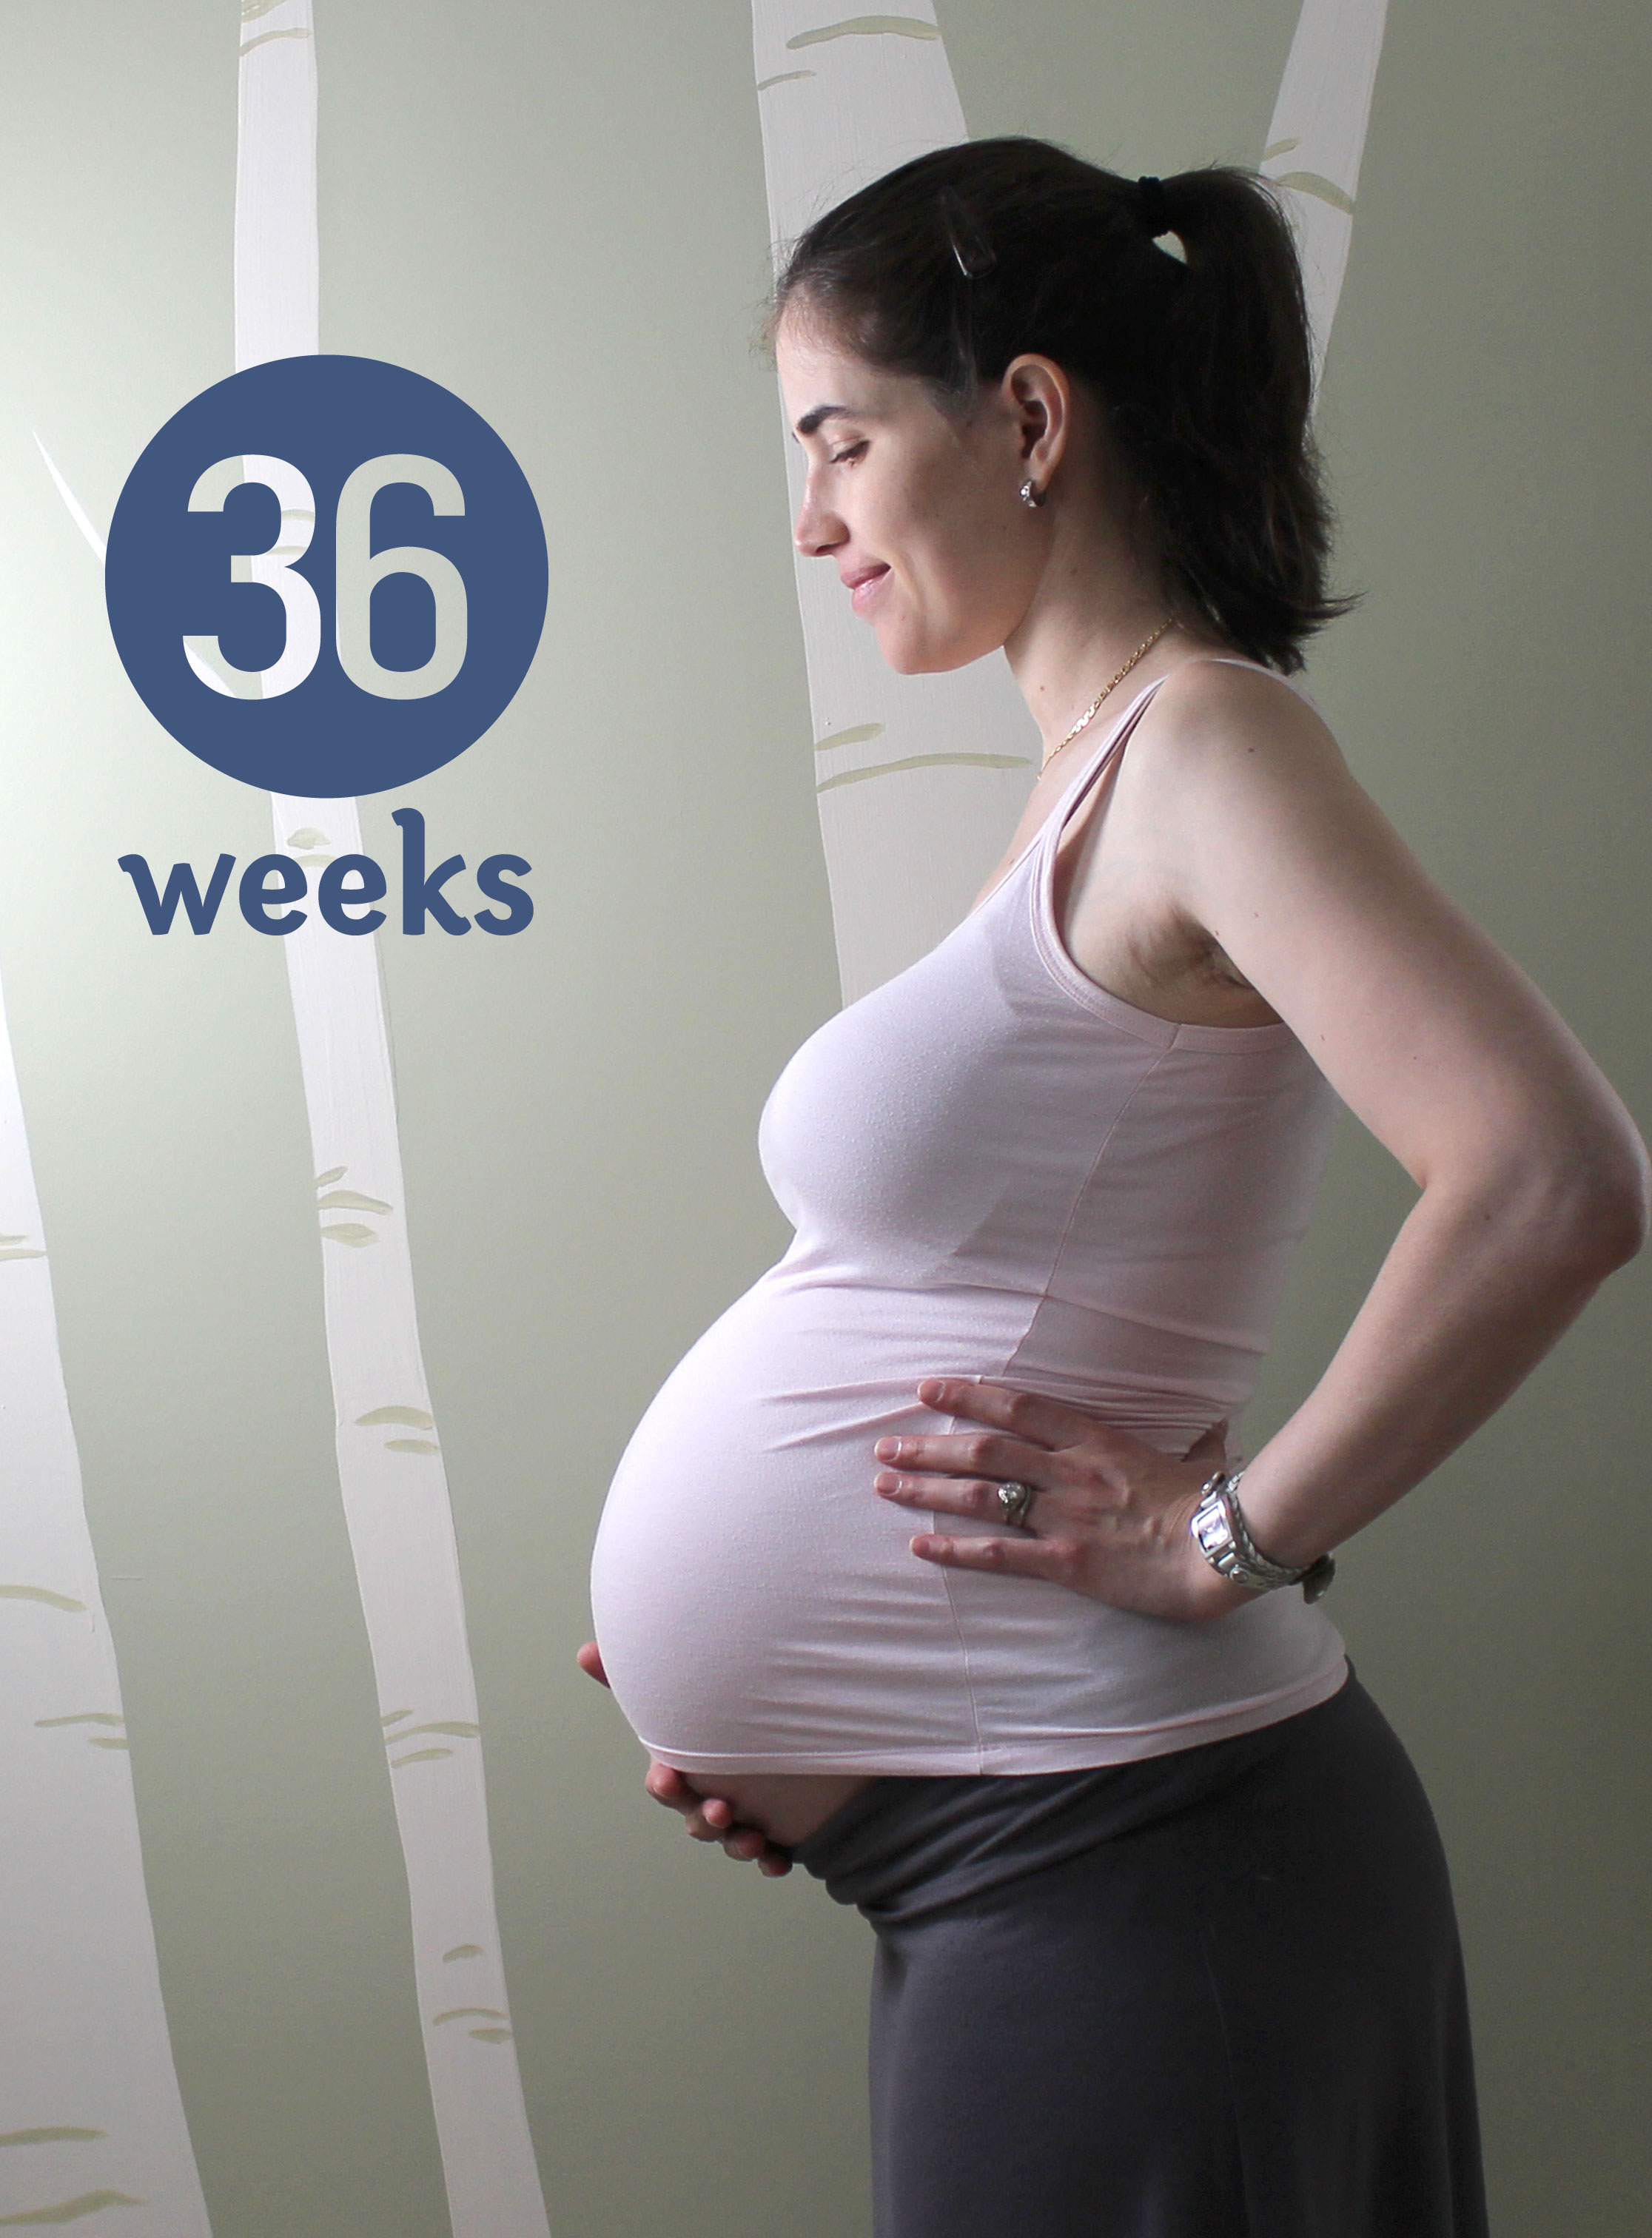 how to bring on labour fast at 40 weeks